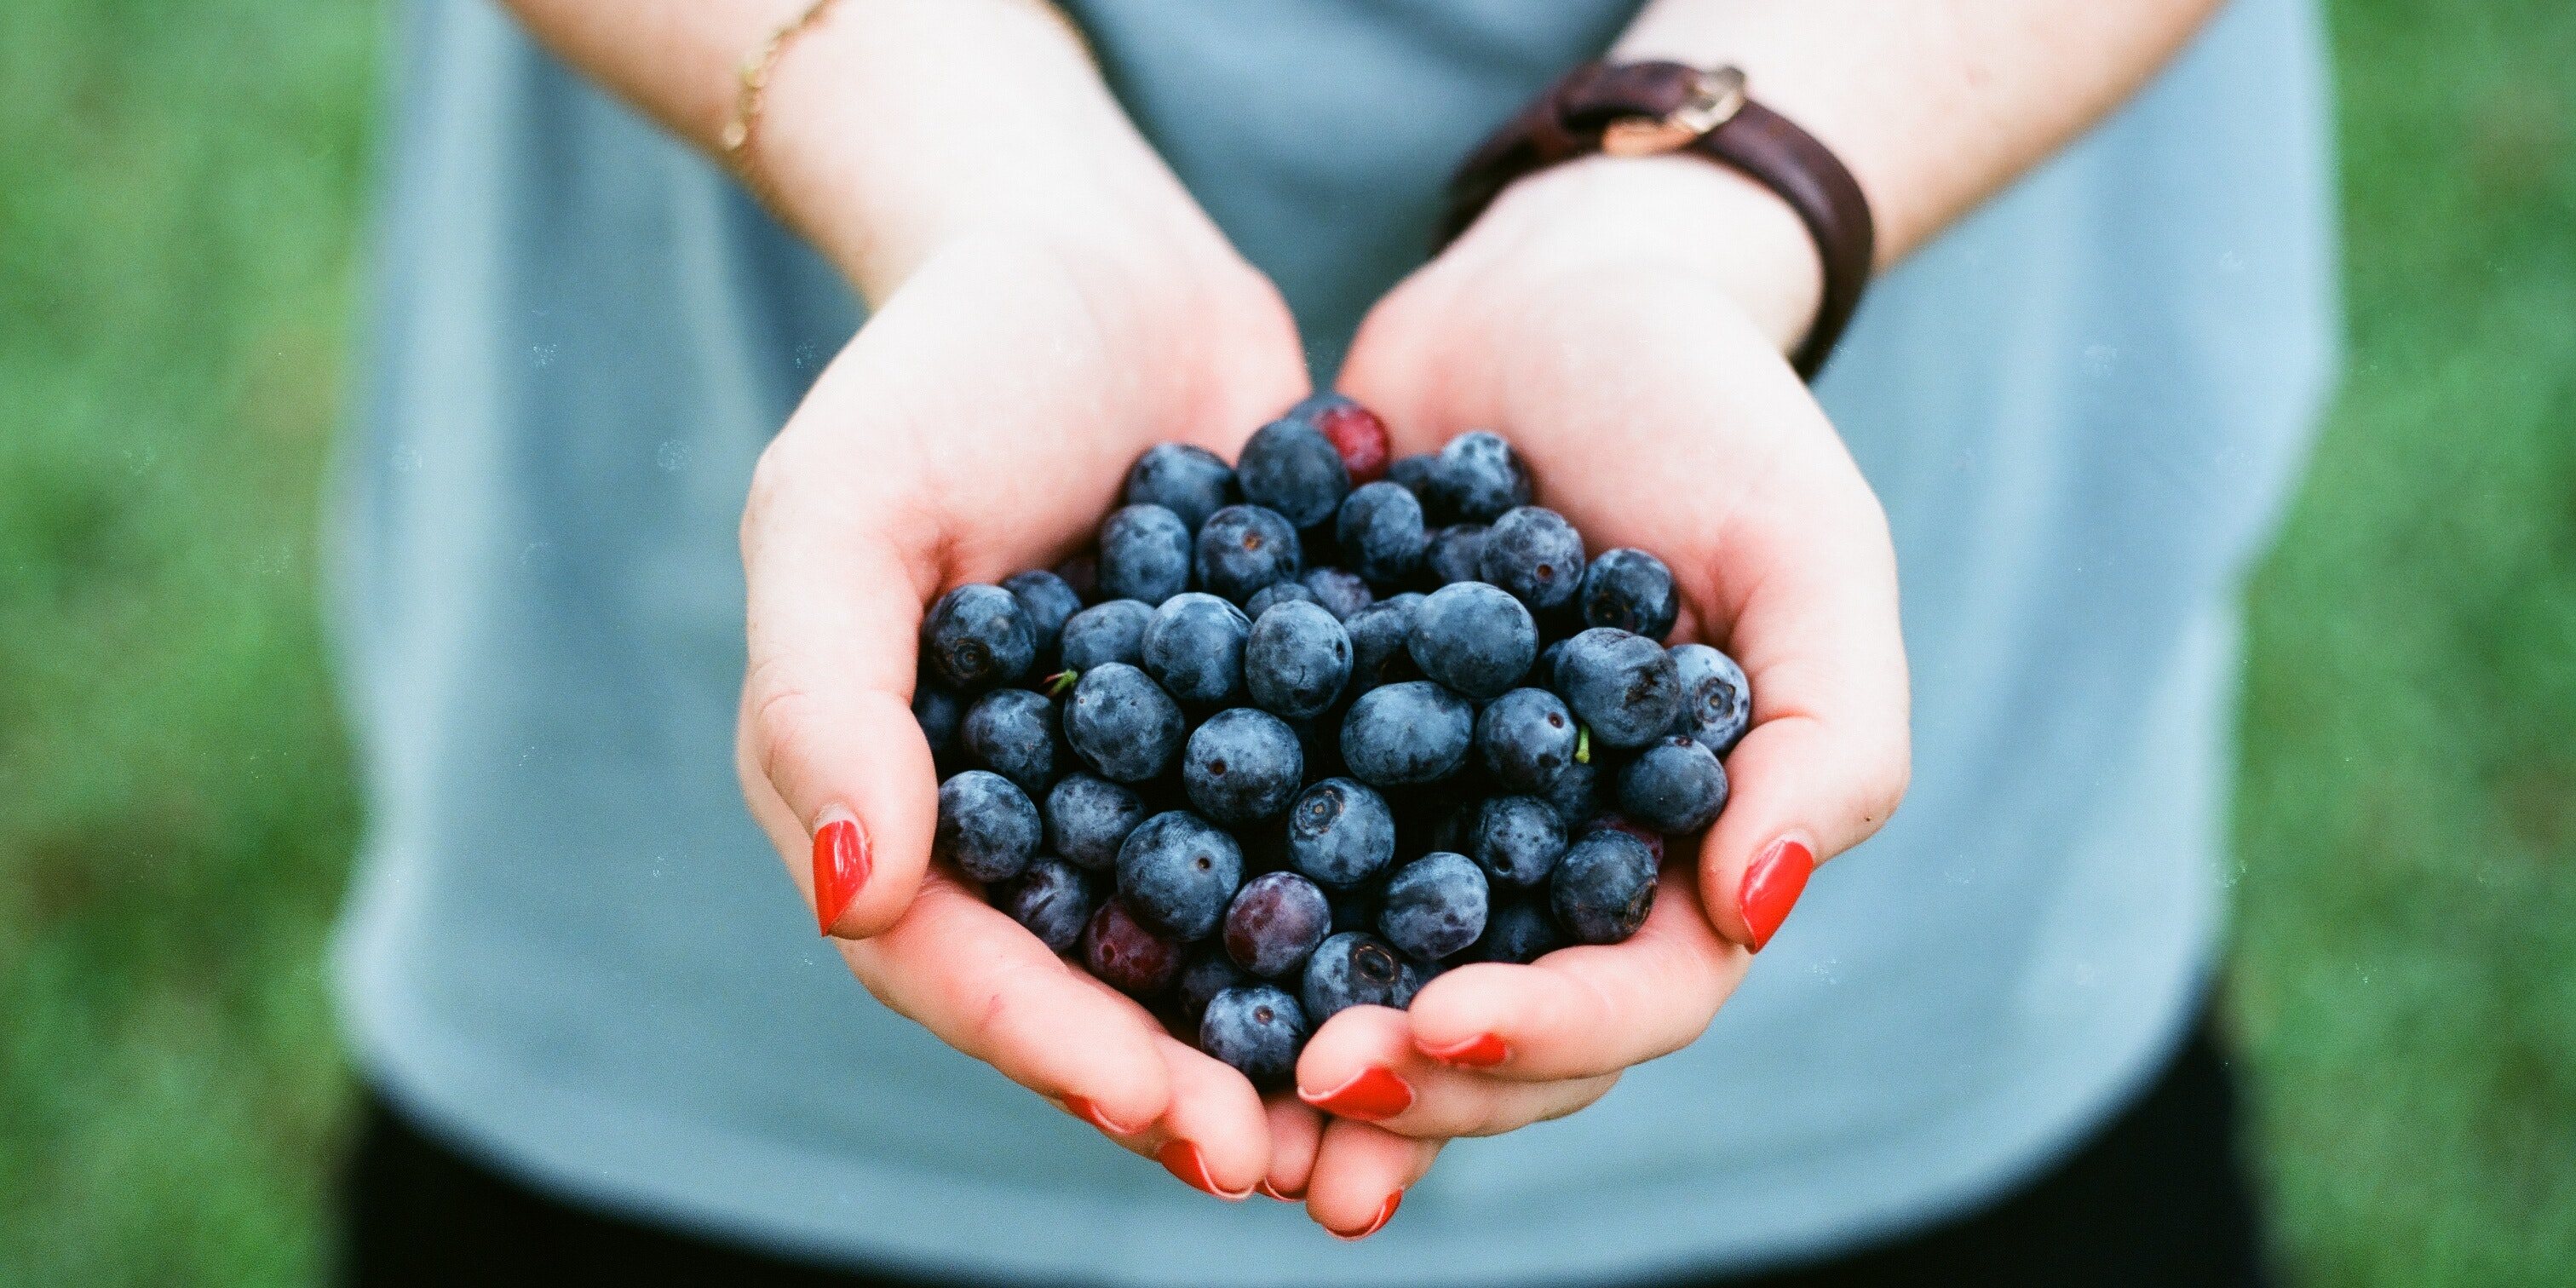 Which Fruit Is the Best for Your Health? Here's What 3 Nutritionists Said